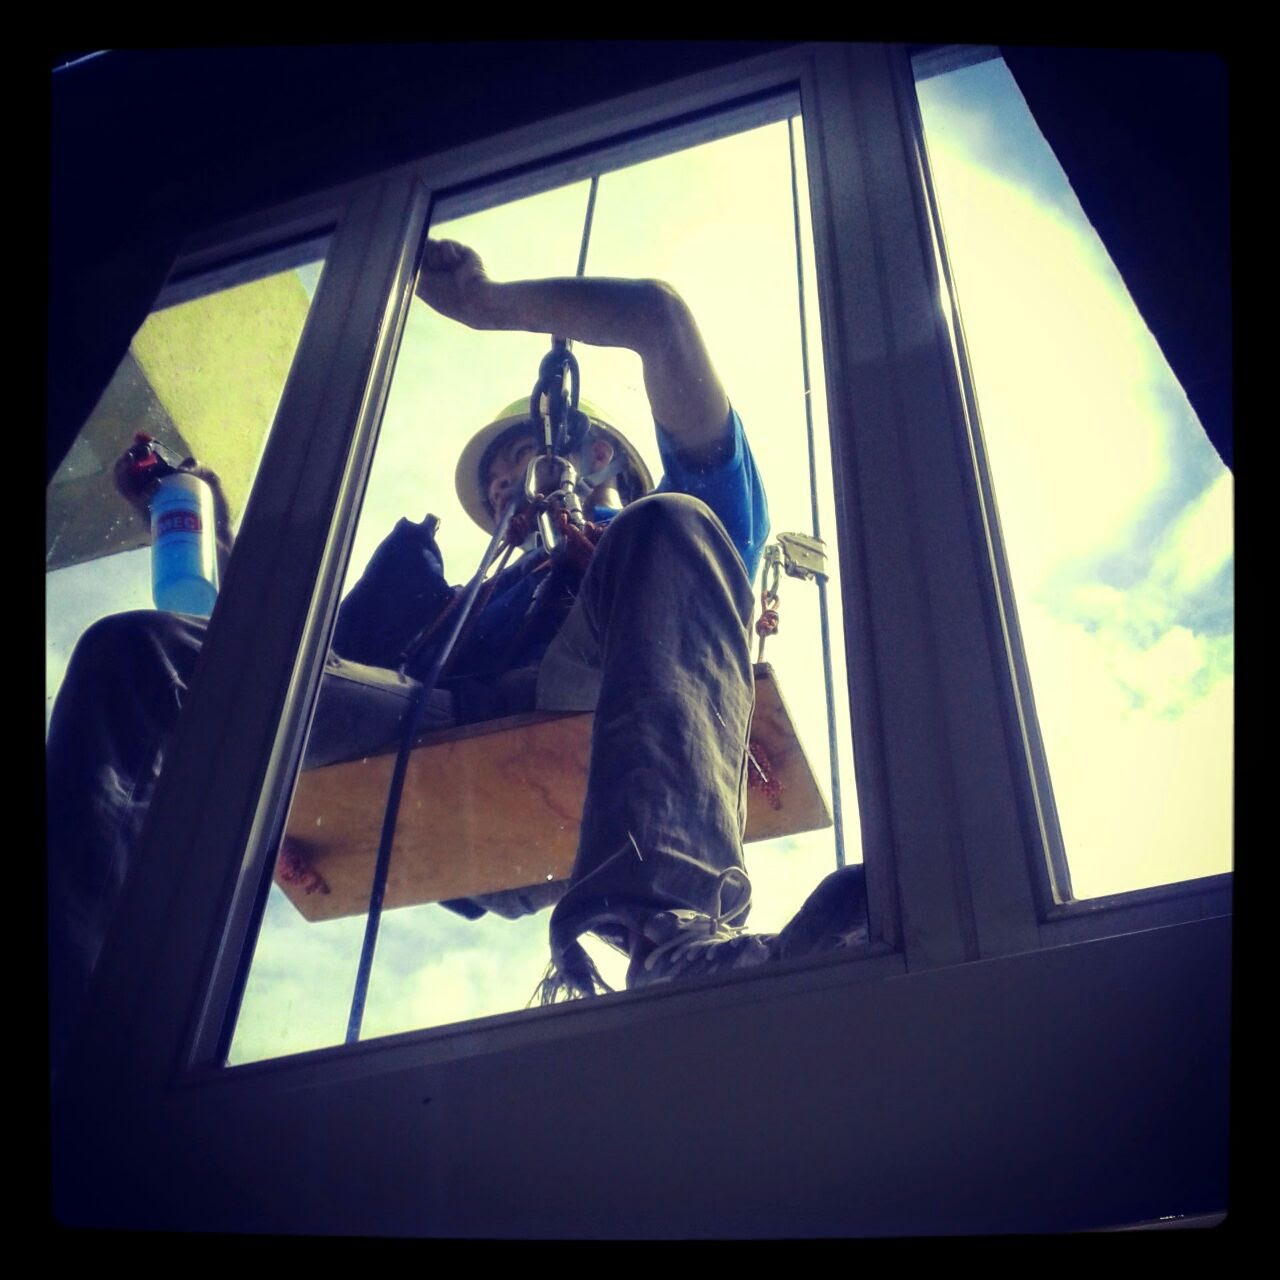 external window cleaning